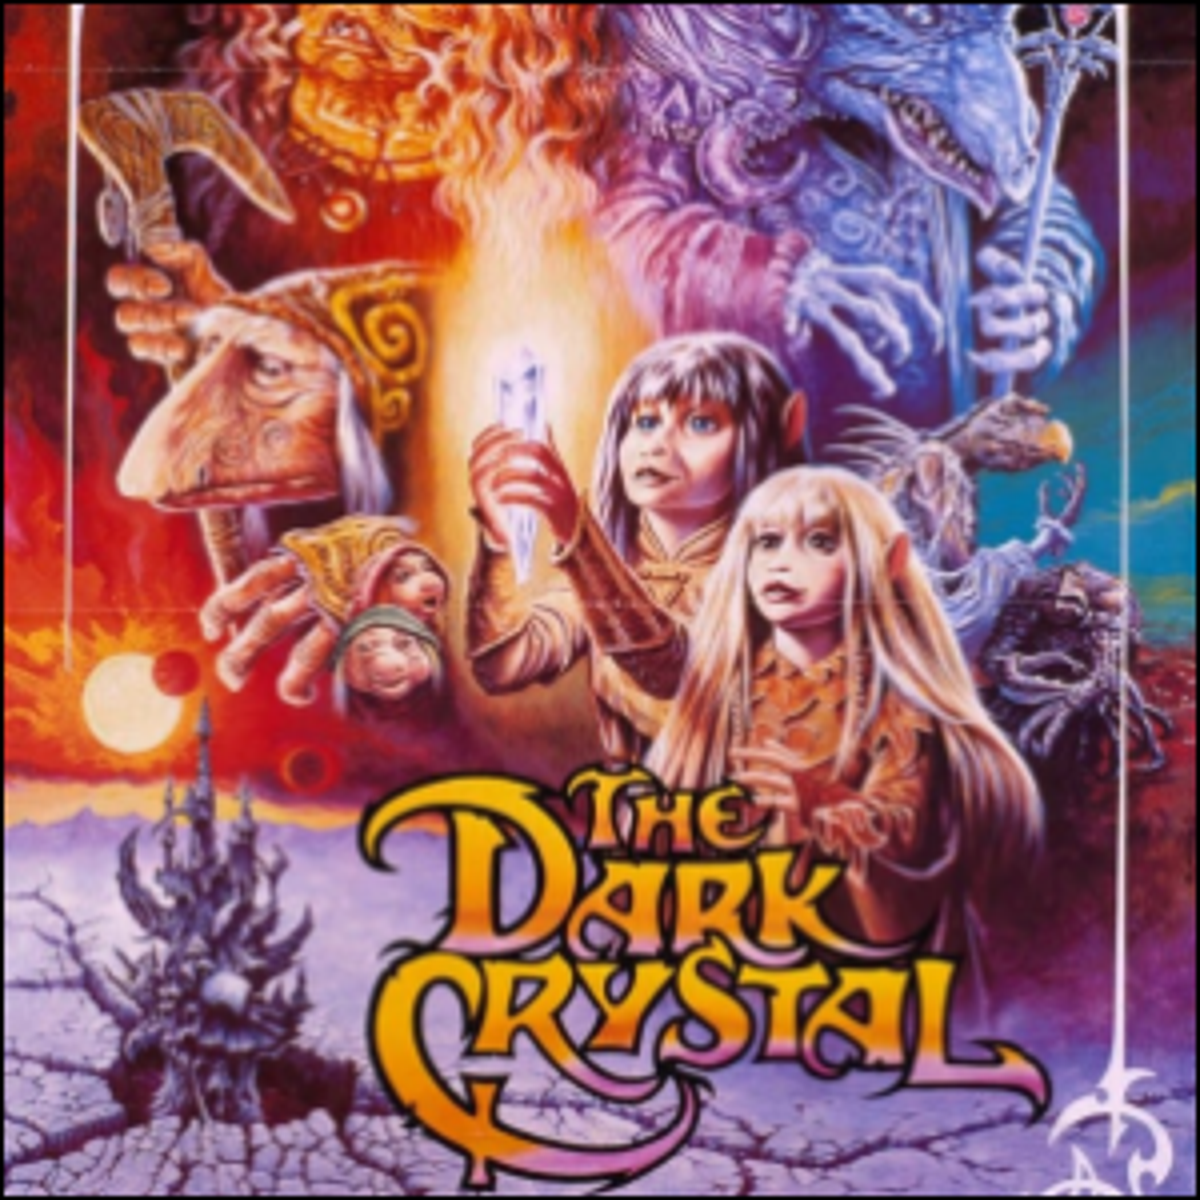 One of the various movie posters for The Dark Crystal.